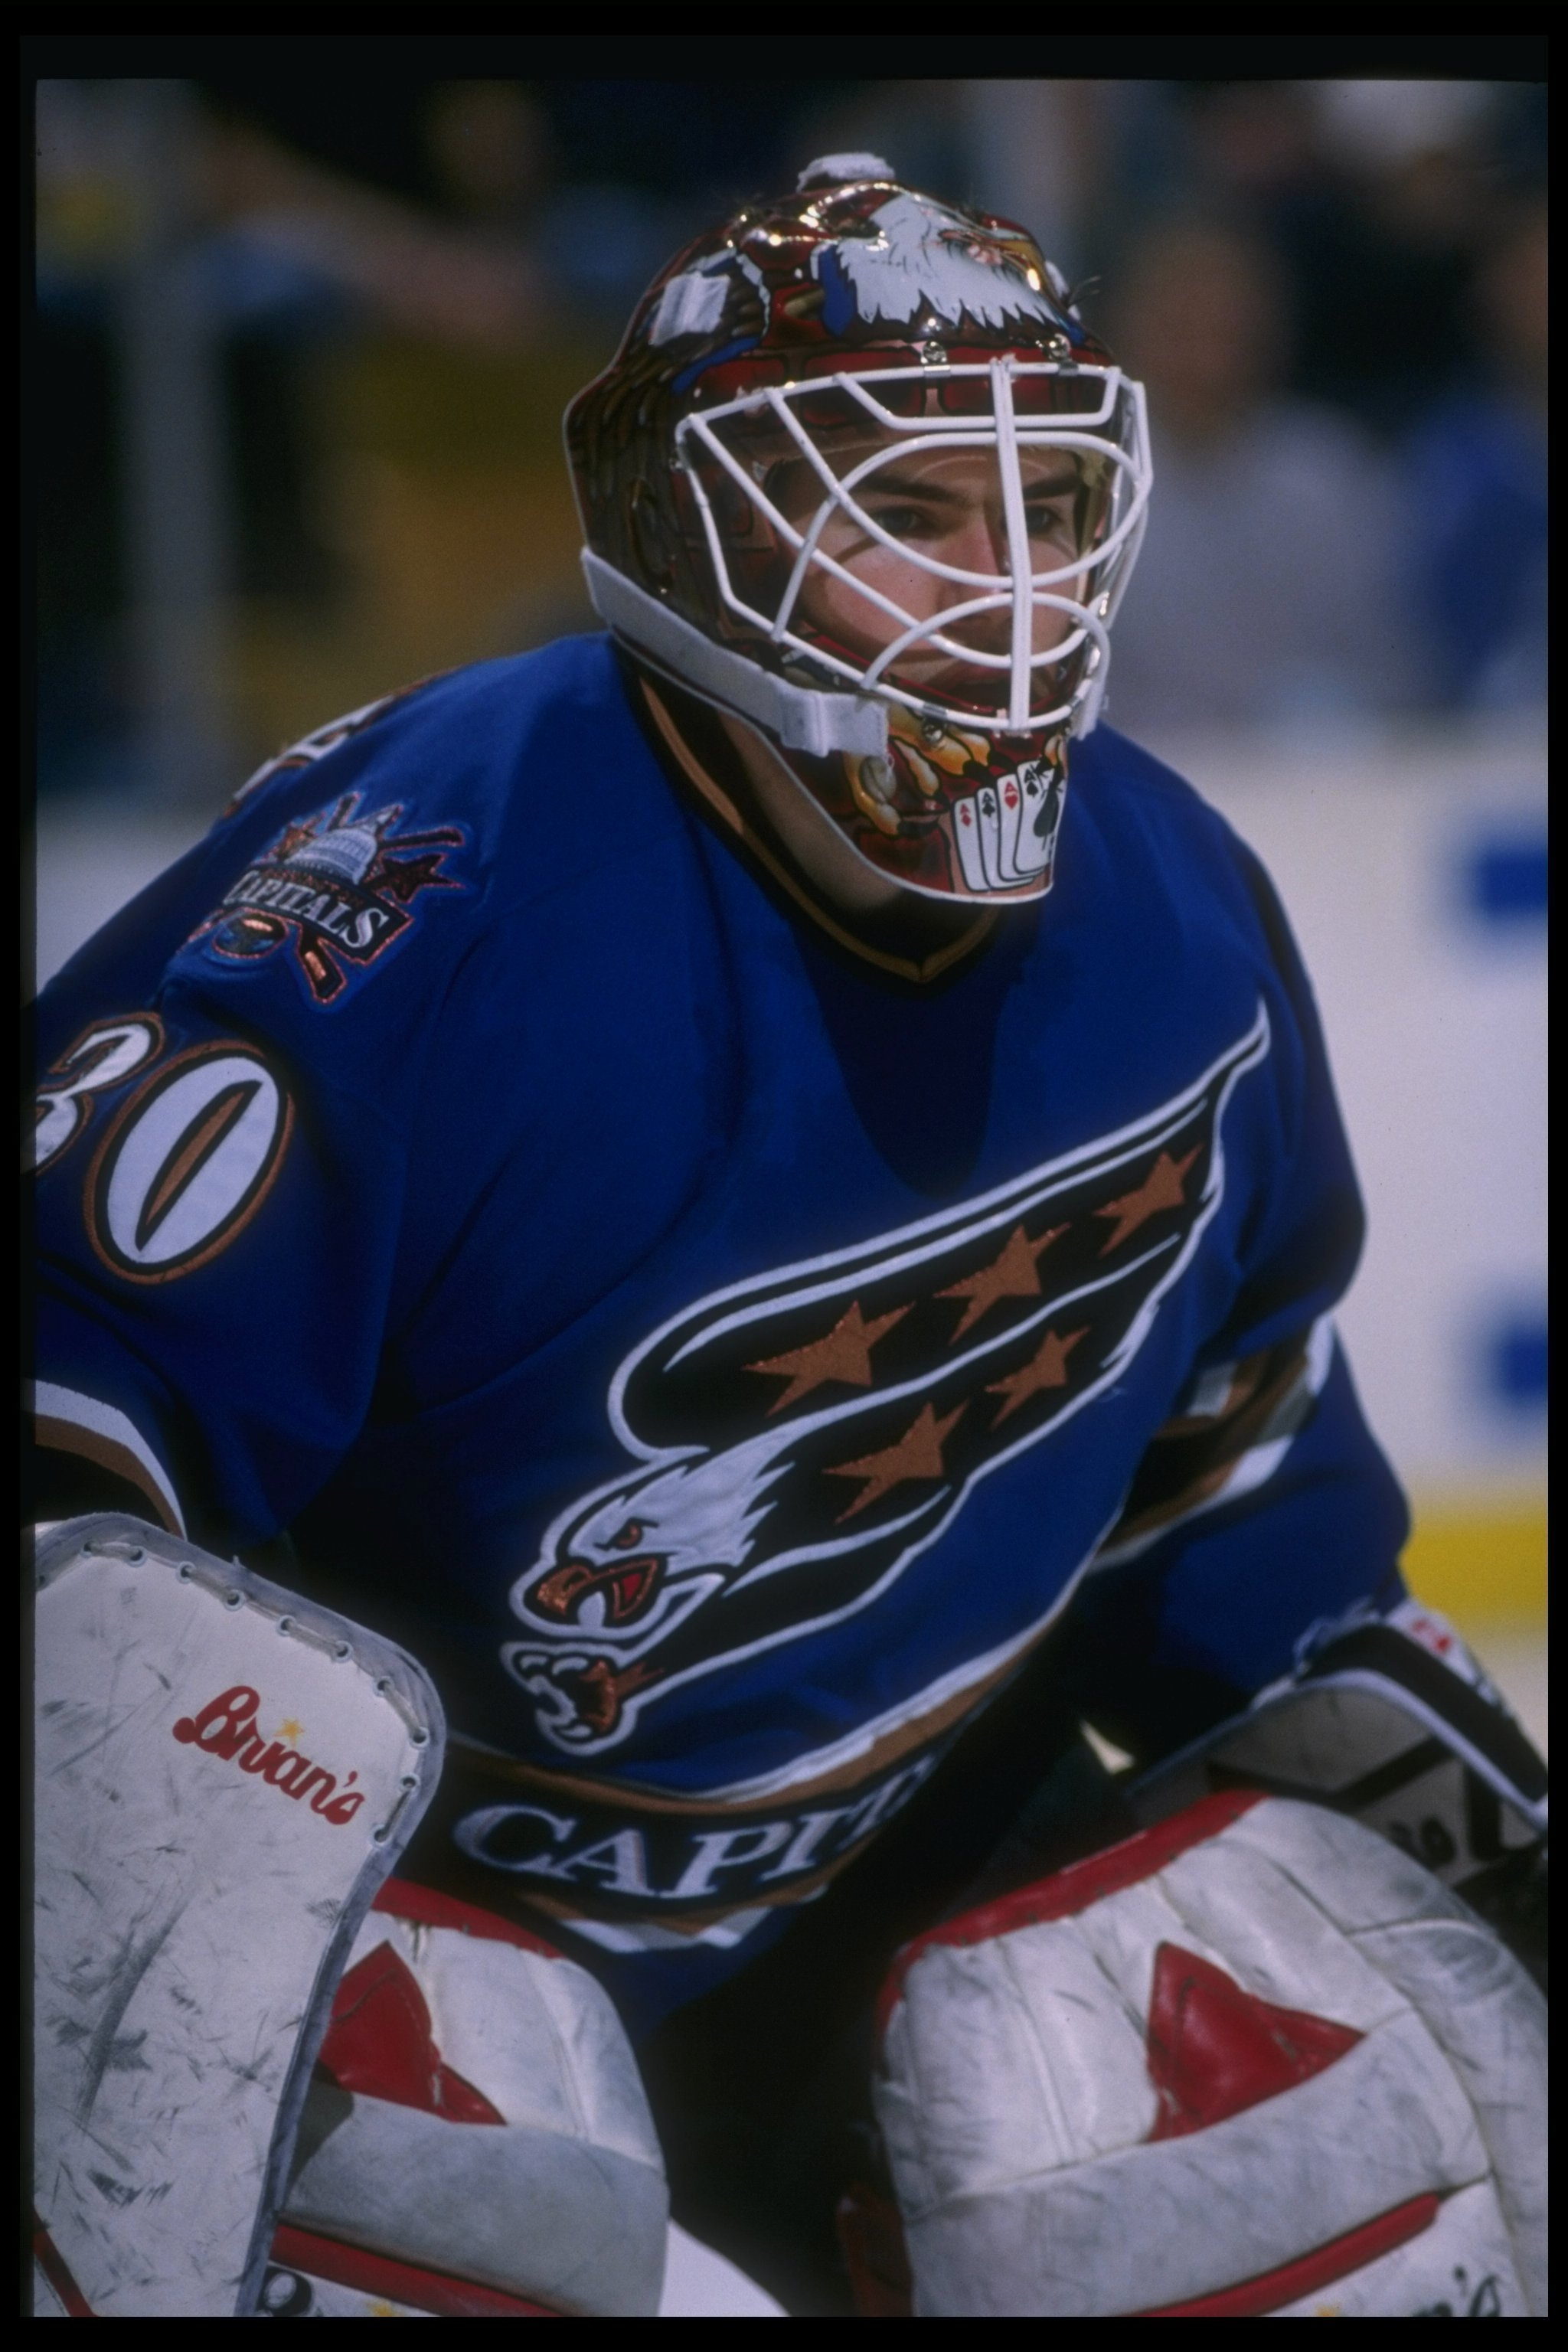 9 Apr 1996: Goaltender Jim Carey of the Washington Capitals looks on during a game against the Buffalo Sabres at Memorial Auditorium in Buffalo, New York.